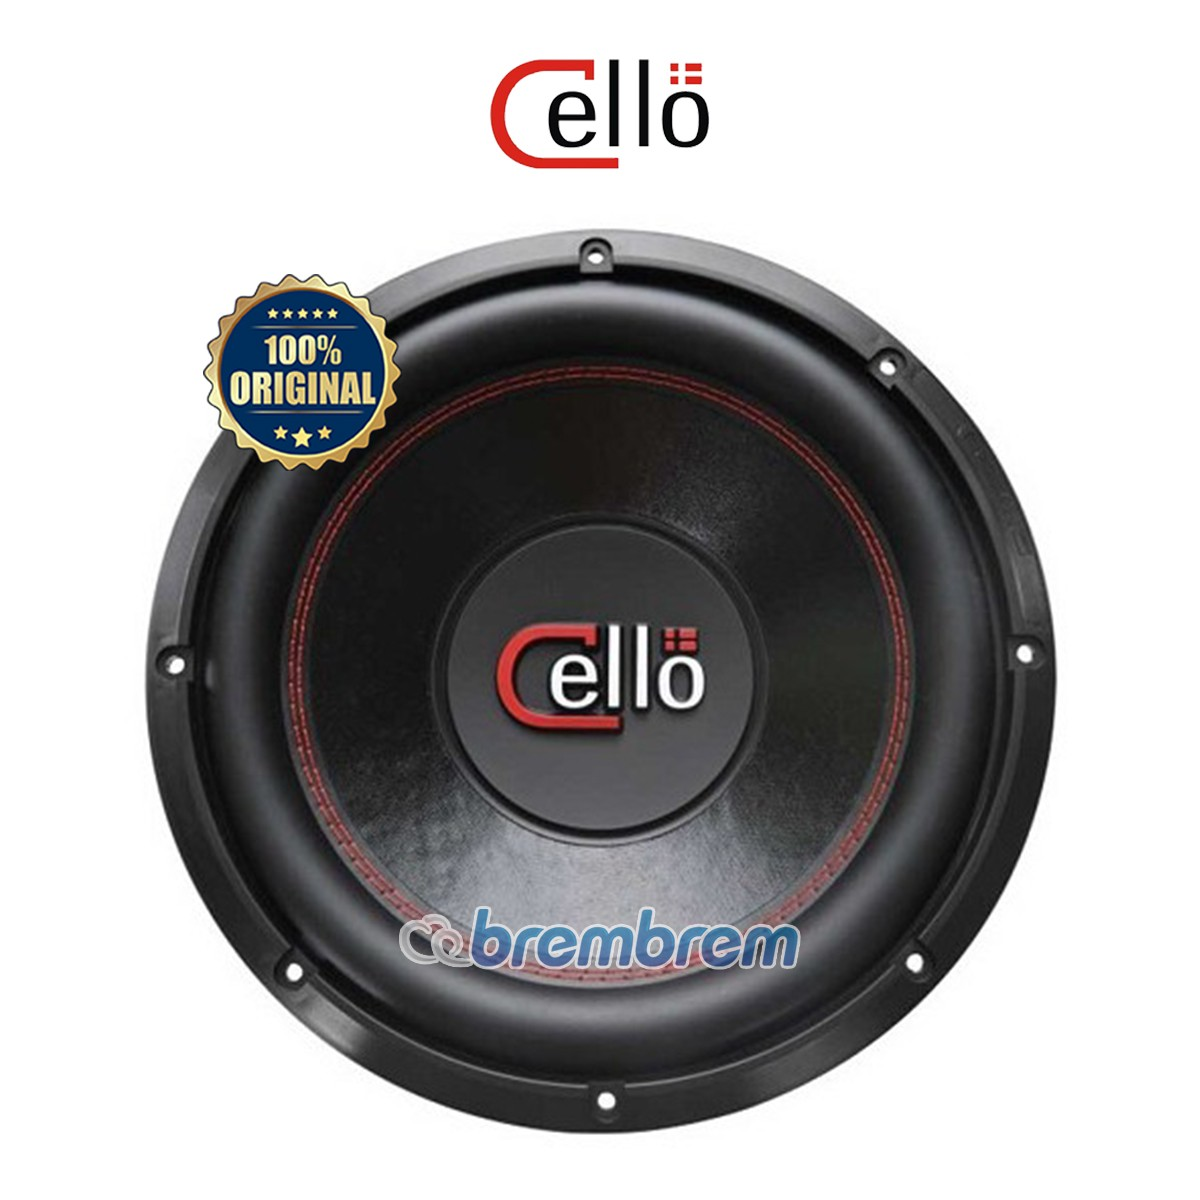 CELLO S12 DVC 4 - SUBWOOFER PASIF